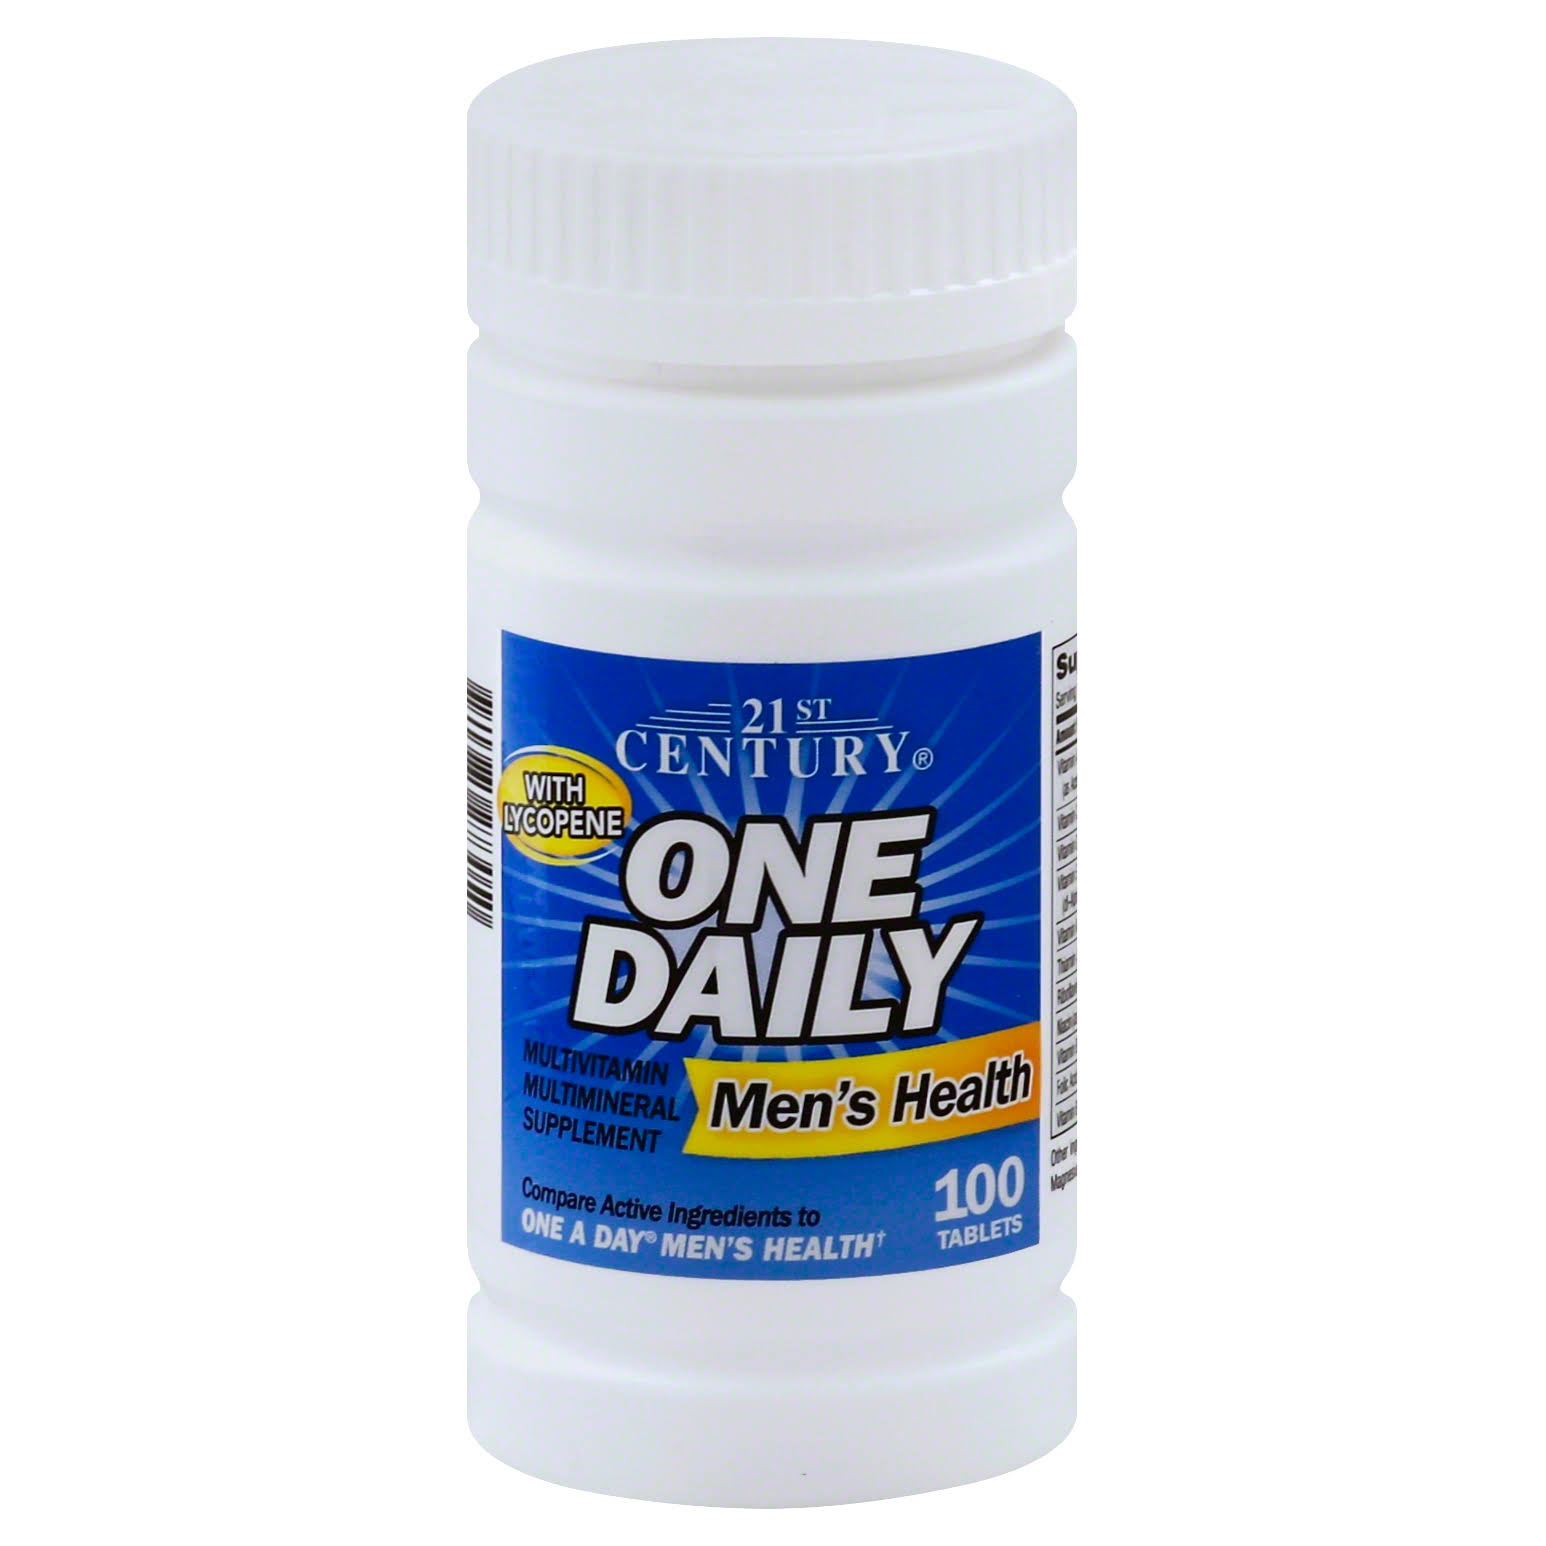 21st Century One Daily Men's Health Tablets - 100ct, Pack of 2